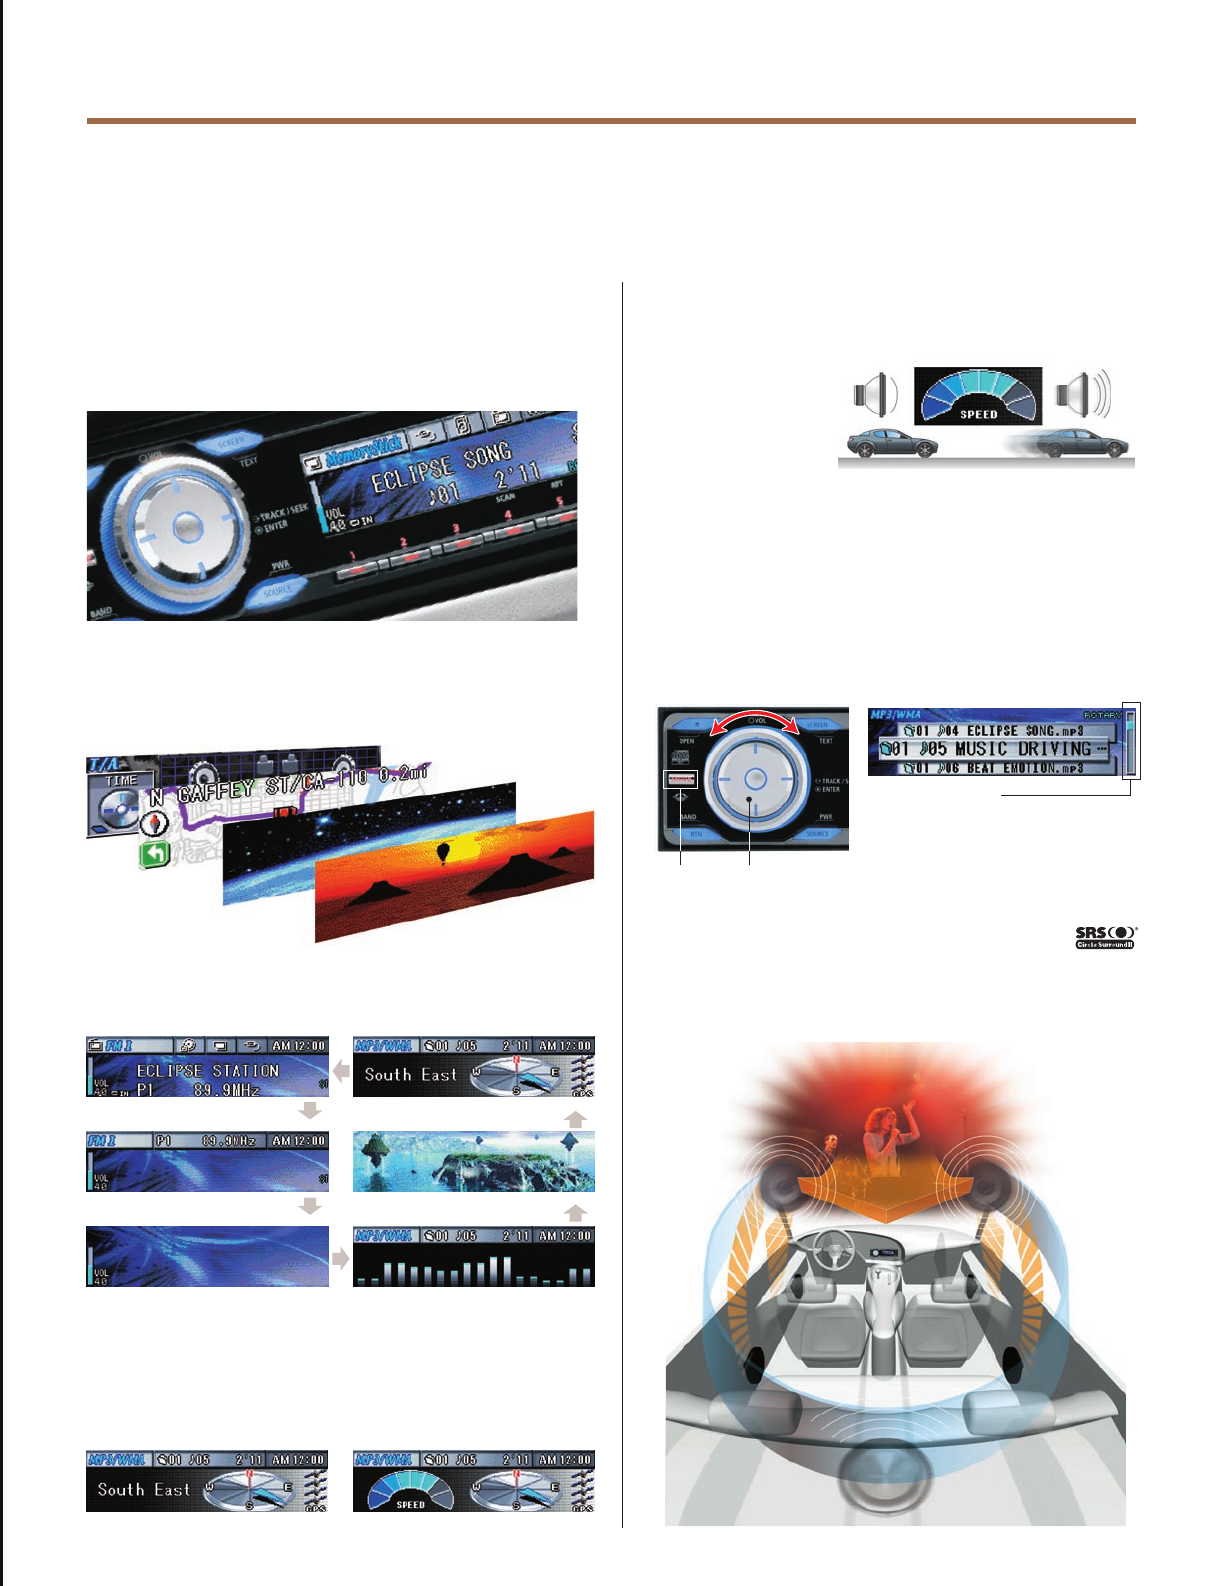 Eclipse MP3 Player User Manual